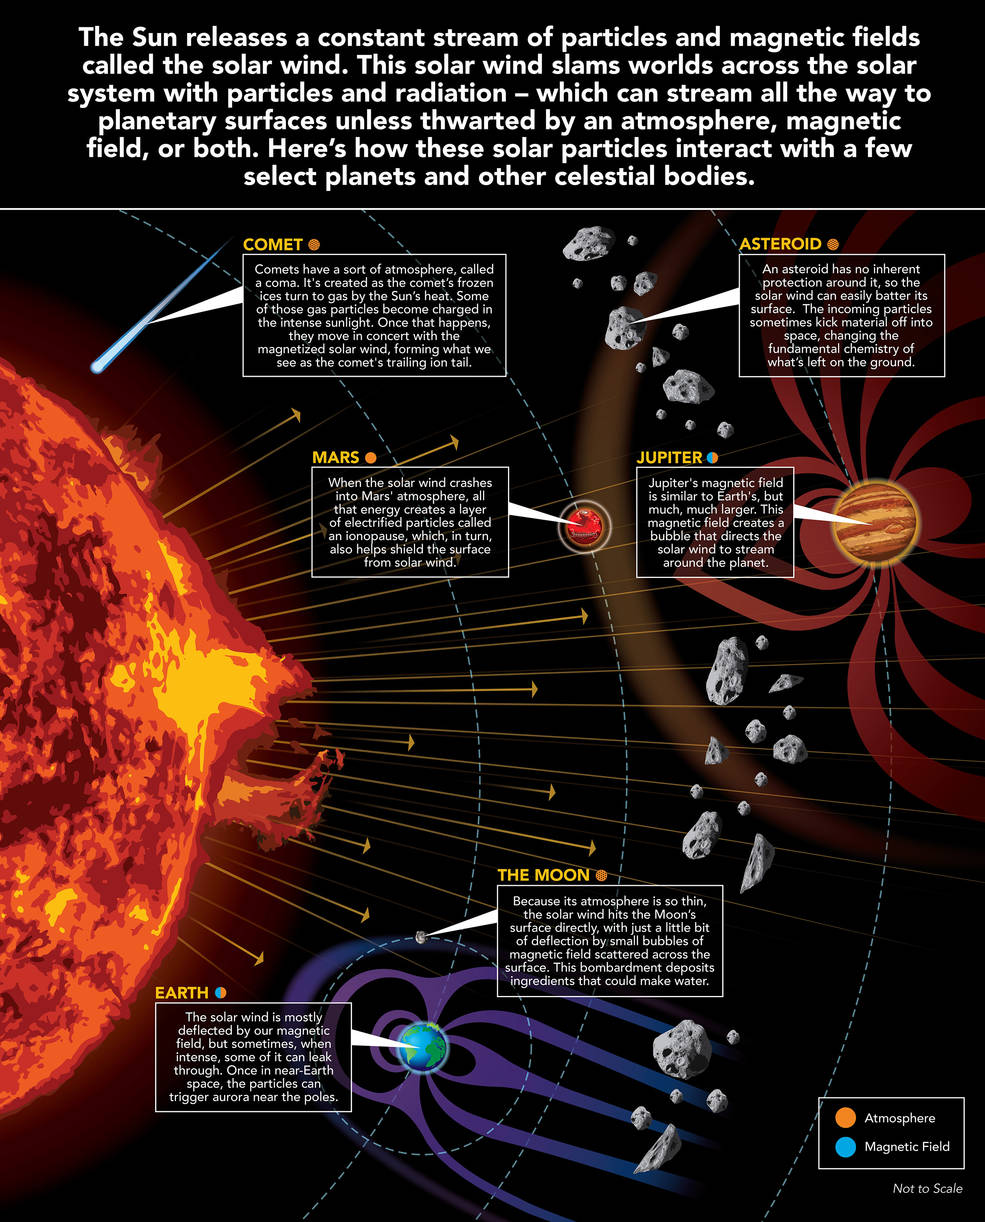 Graphic about solar wind